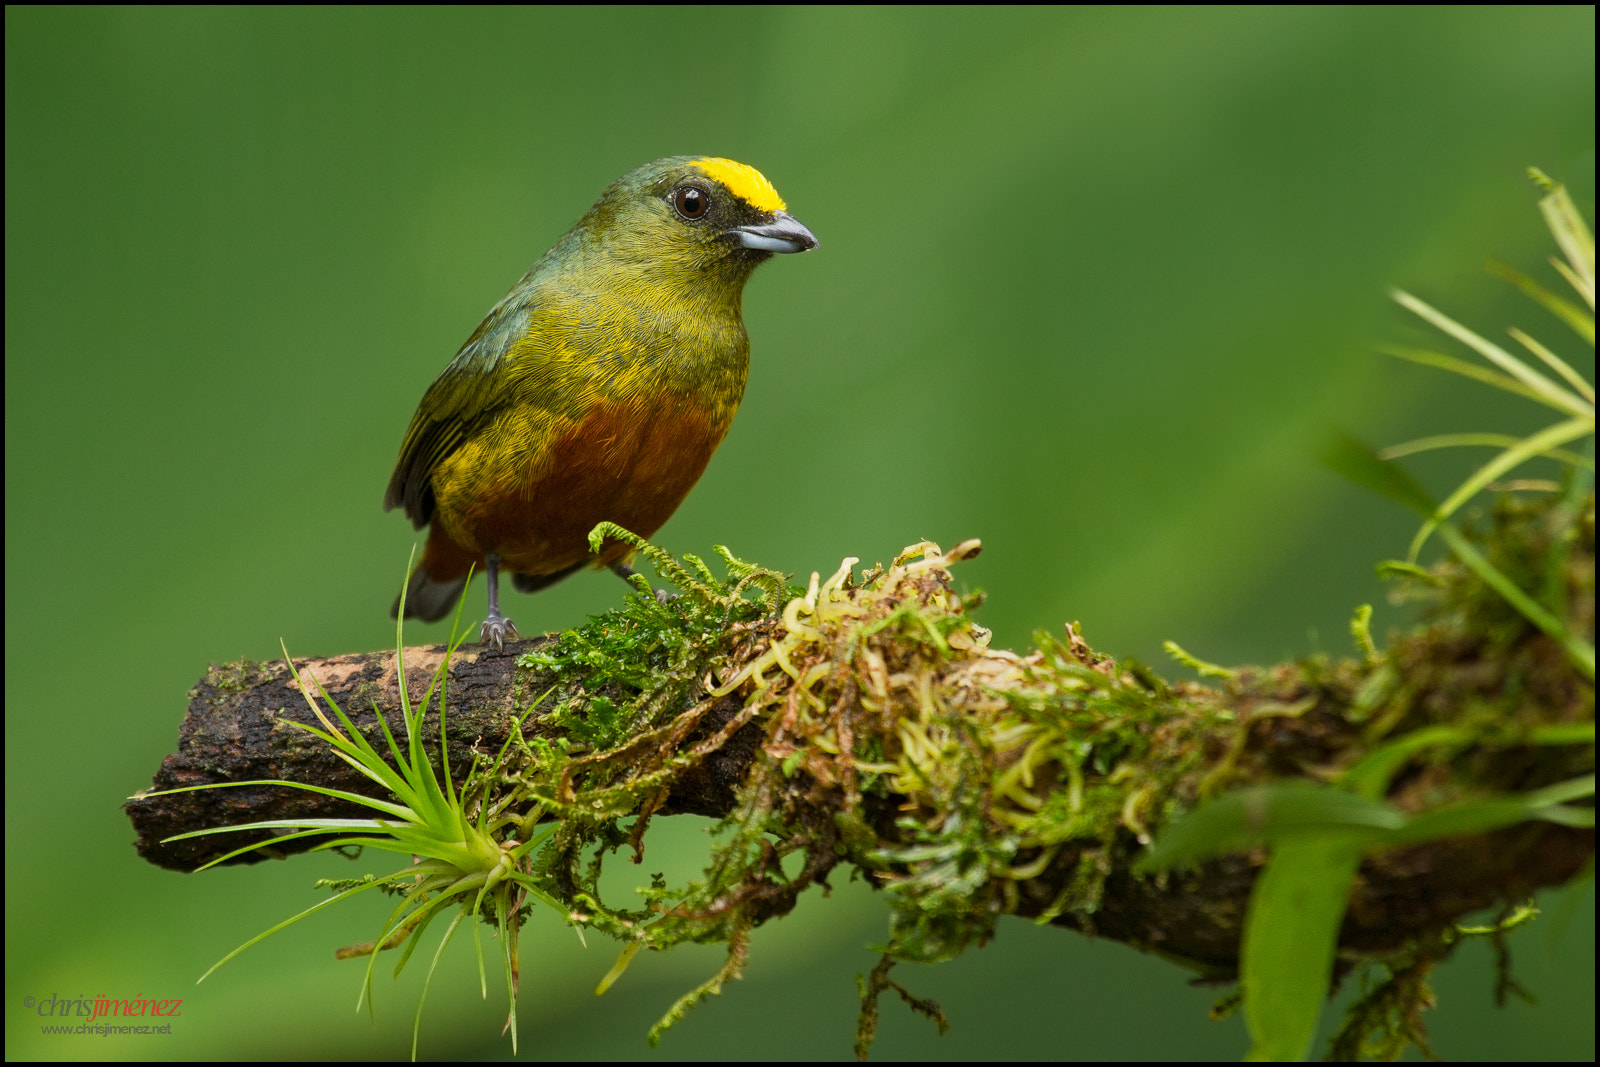 Photograph Olive-backed,Euphonia by Chris Jimenez on 500px